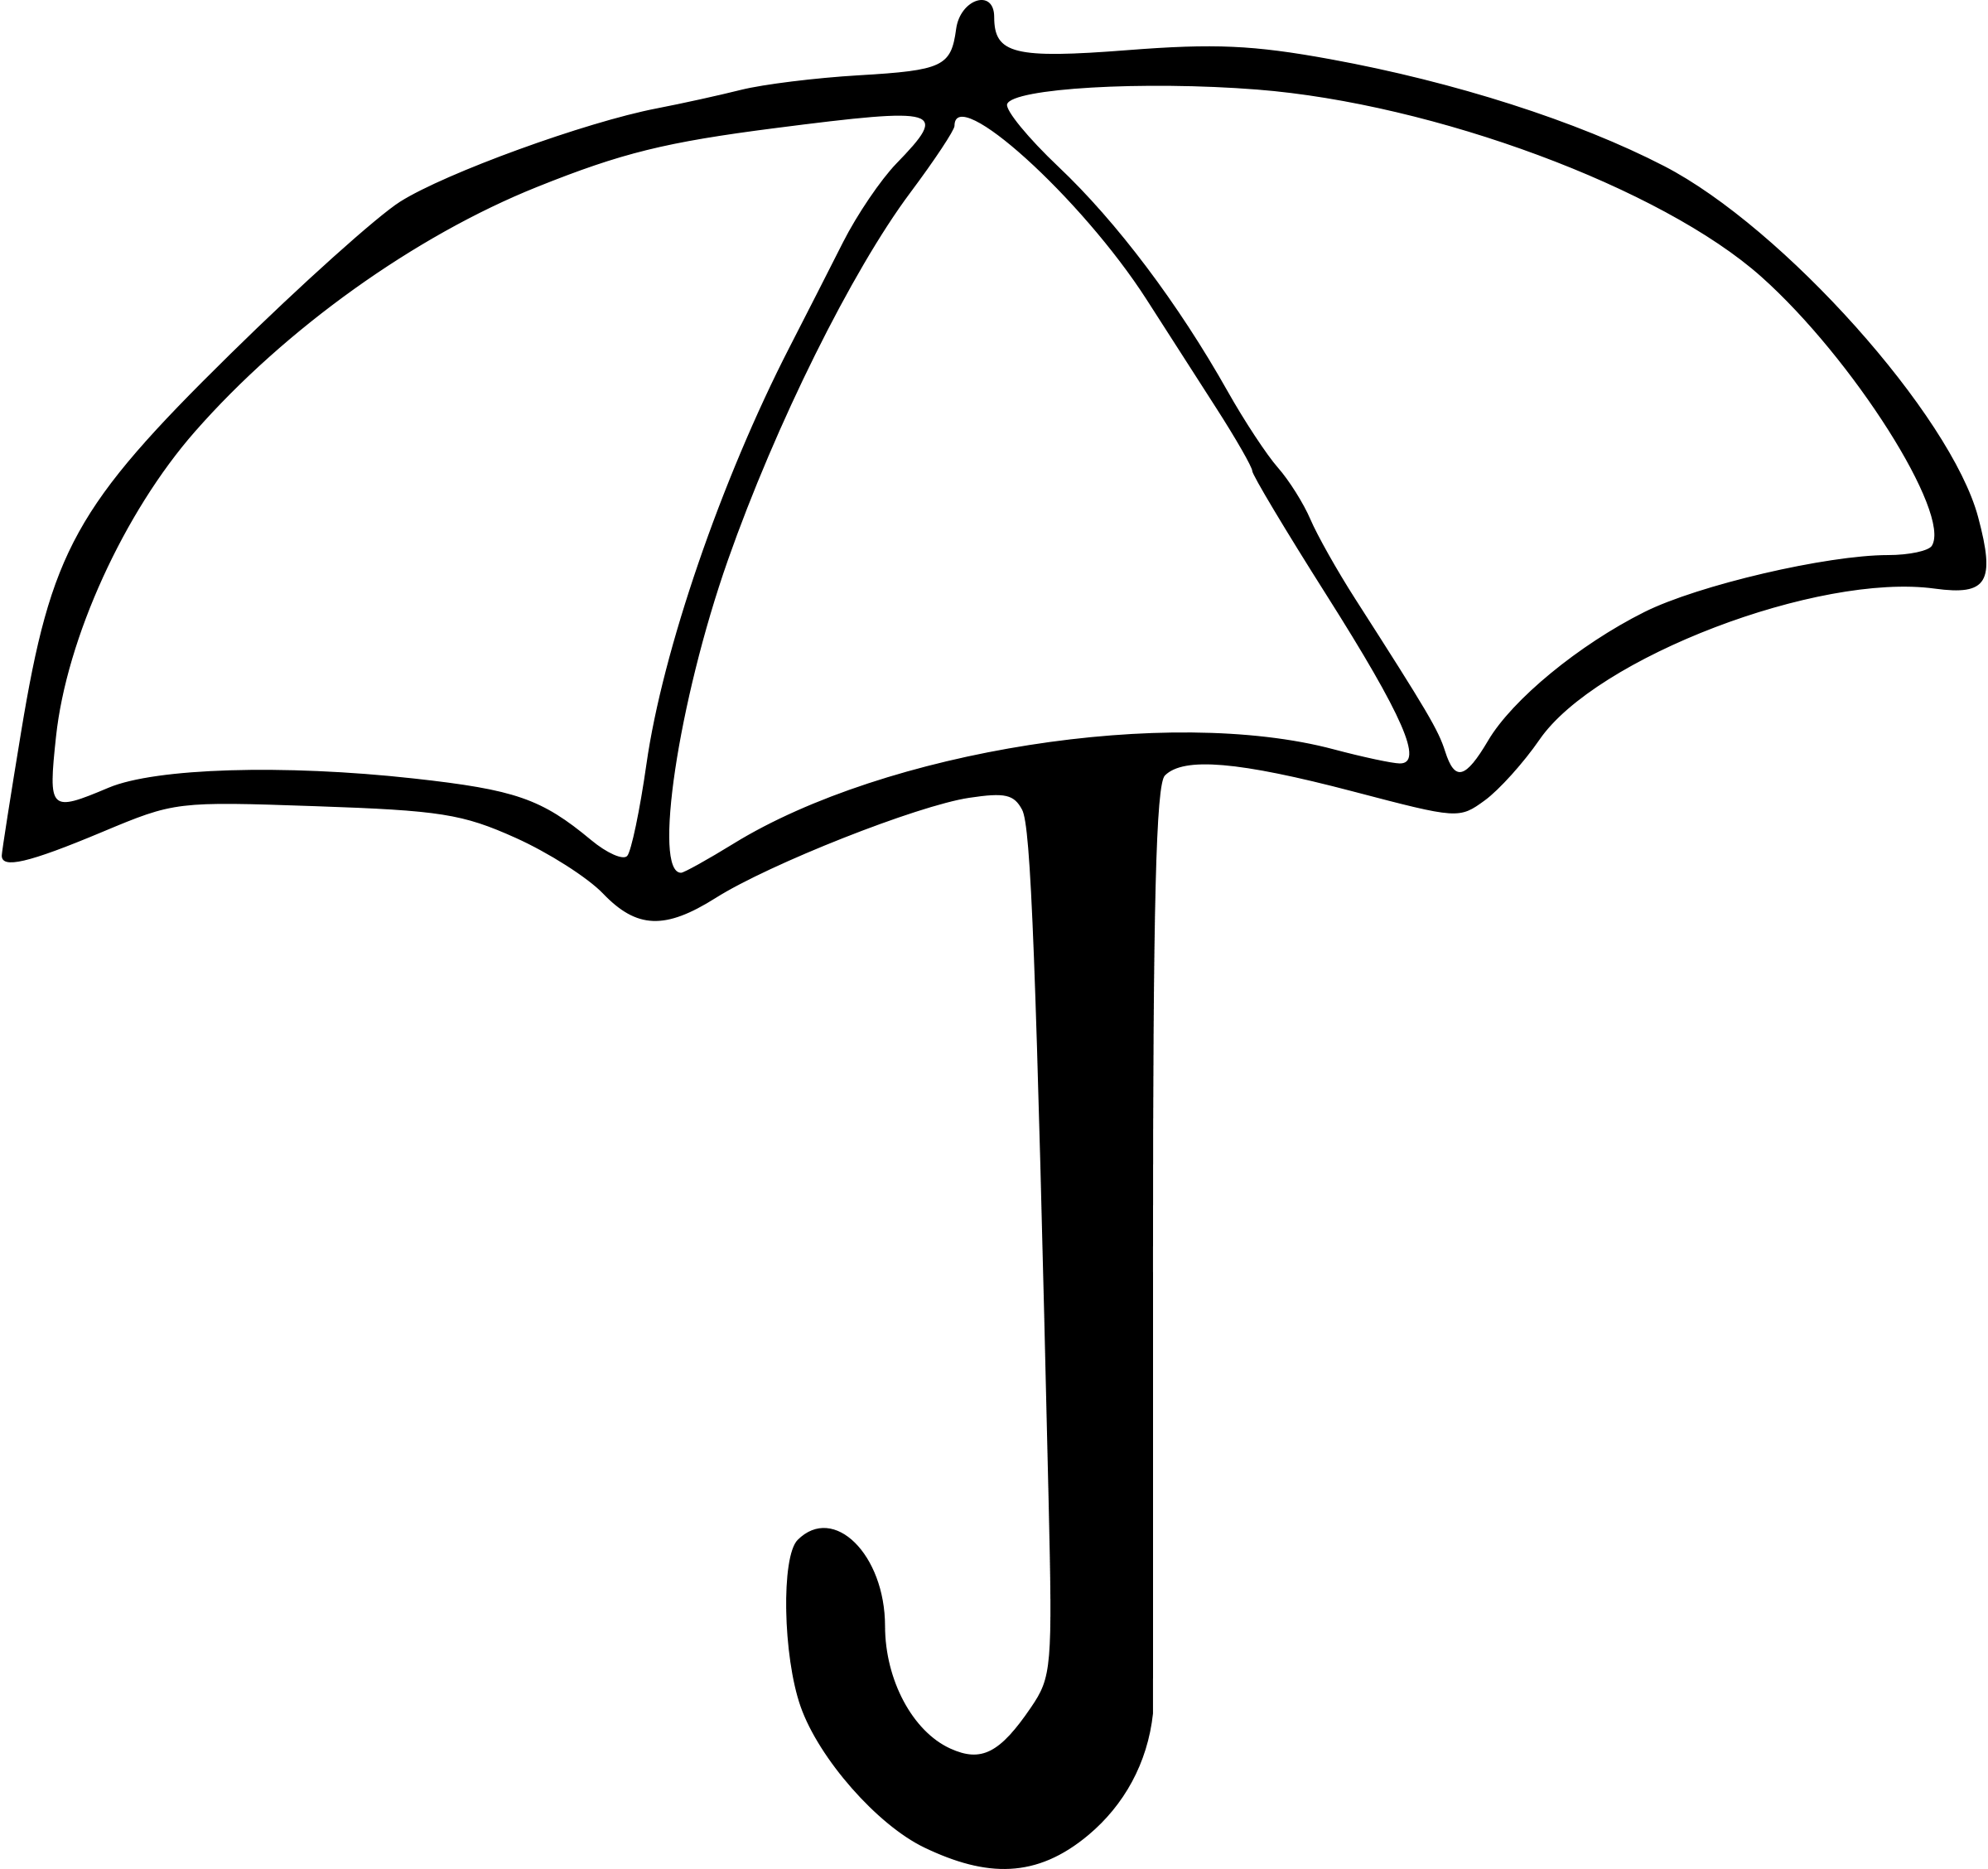 Umbrella Clipart Umbrella Image Umbrellas Clipartix